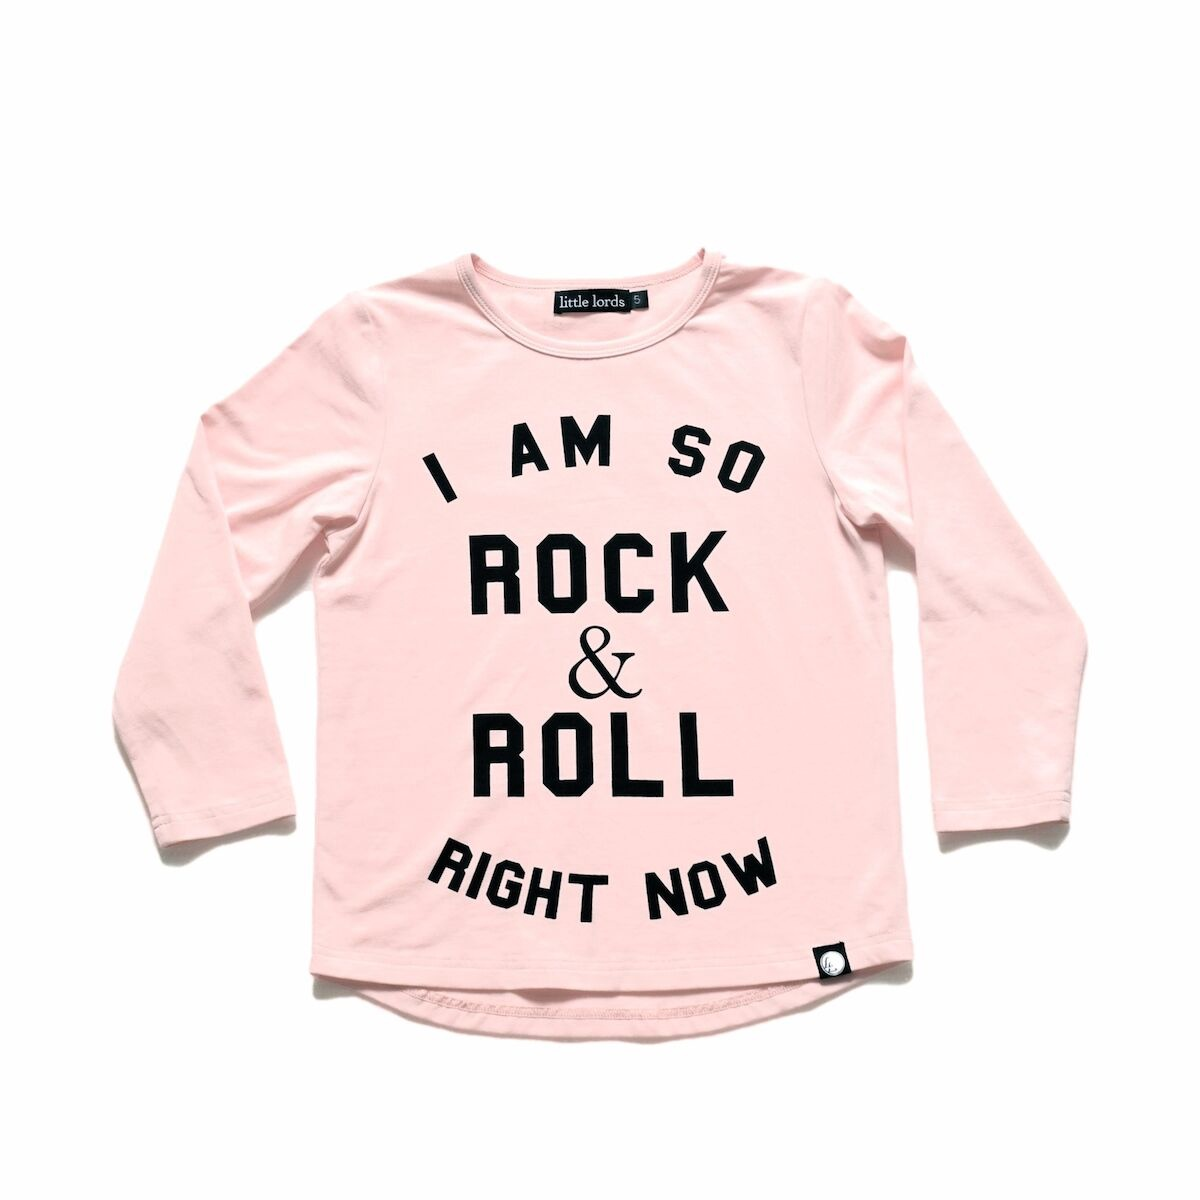 Little Lords Rock & Roll LS Tee Pale Pink